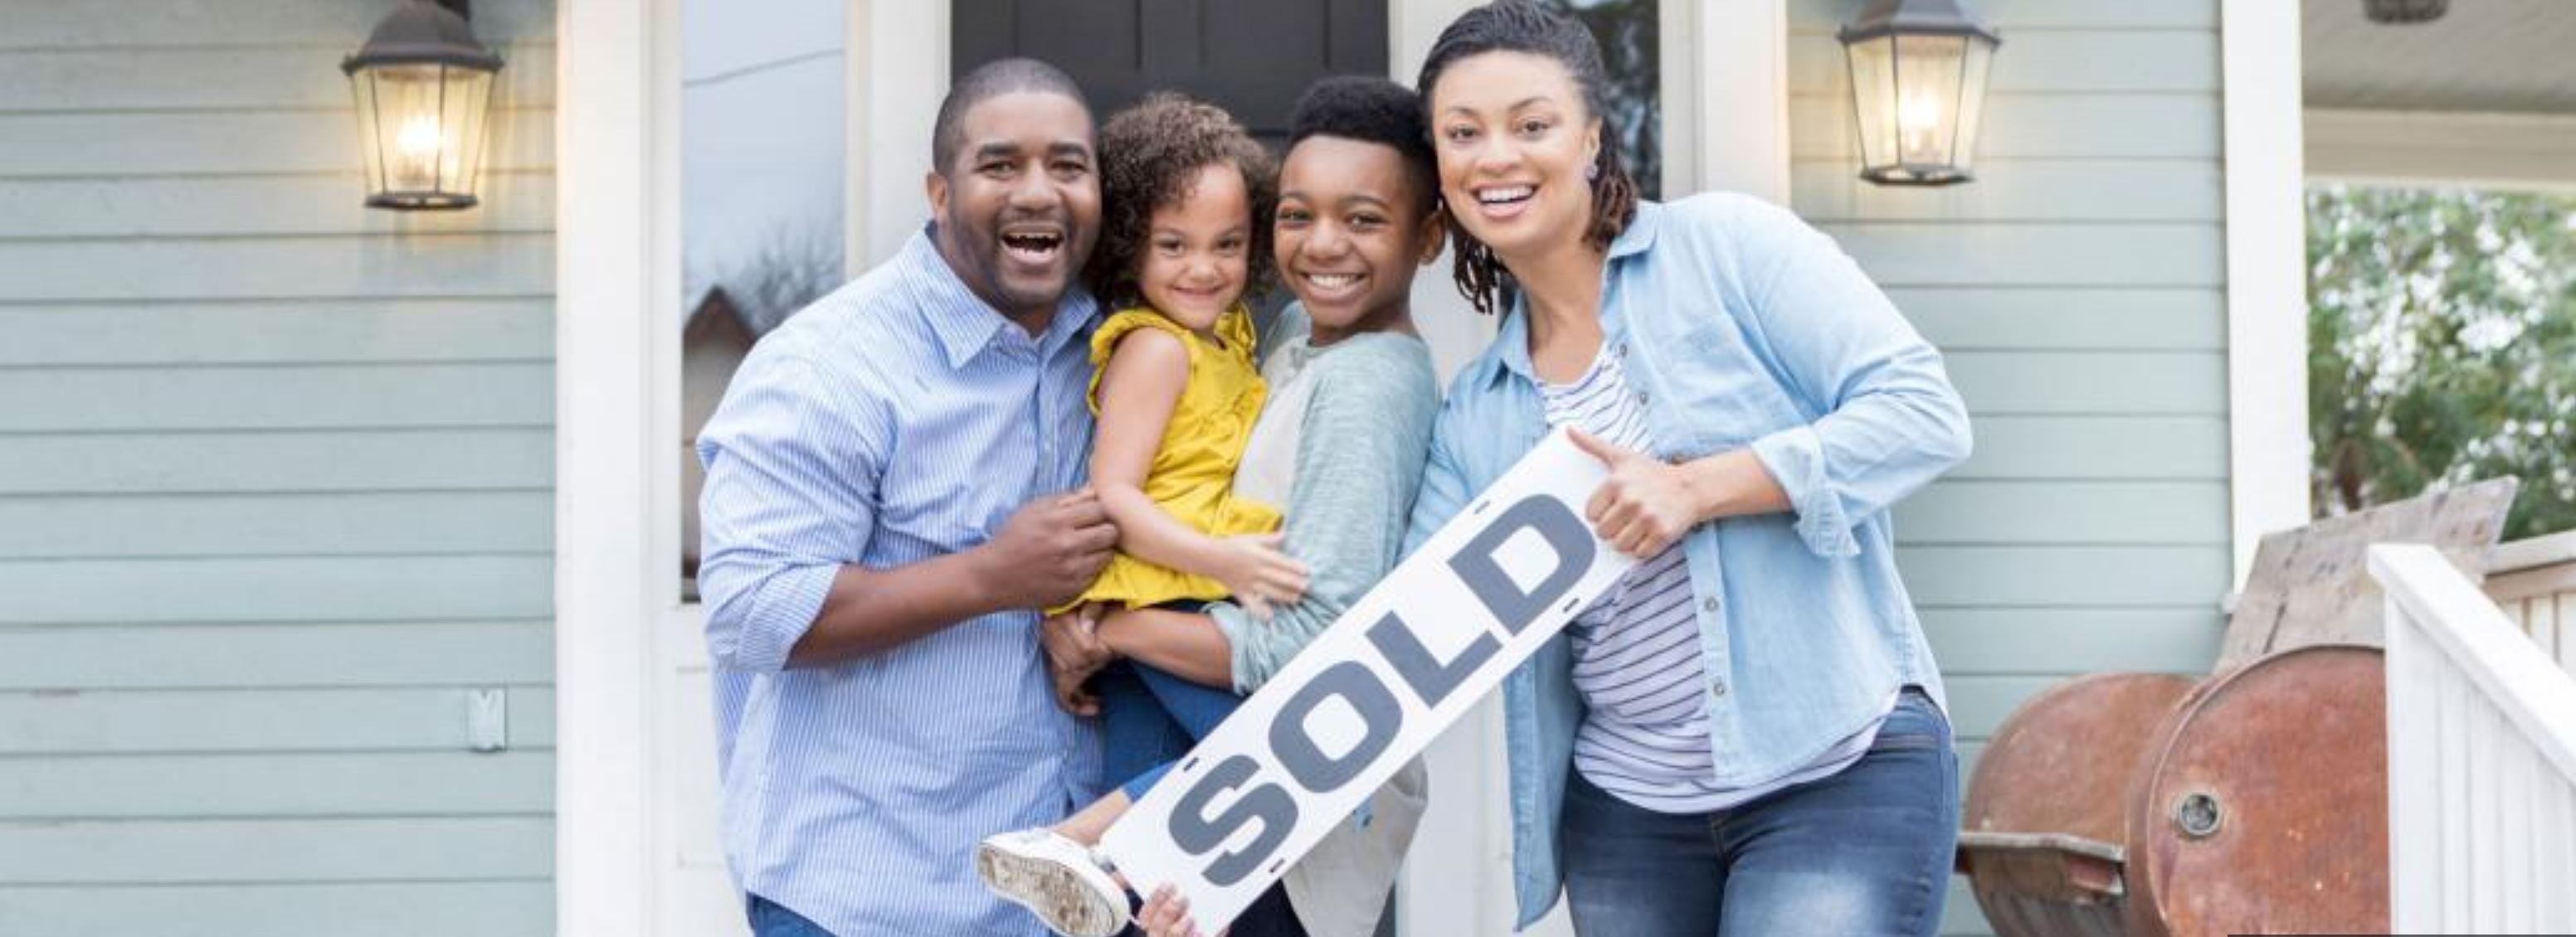 Home-ownership on the rise Hoey Team eXp Realty